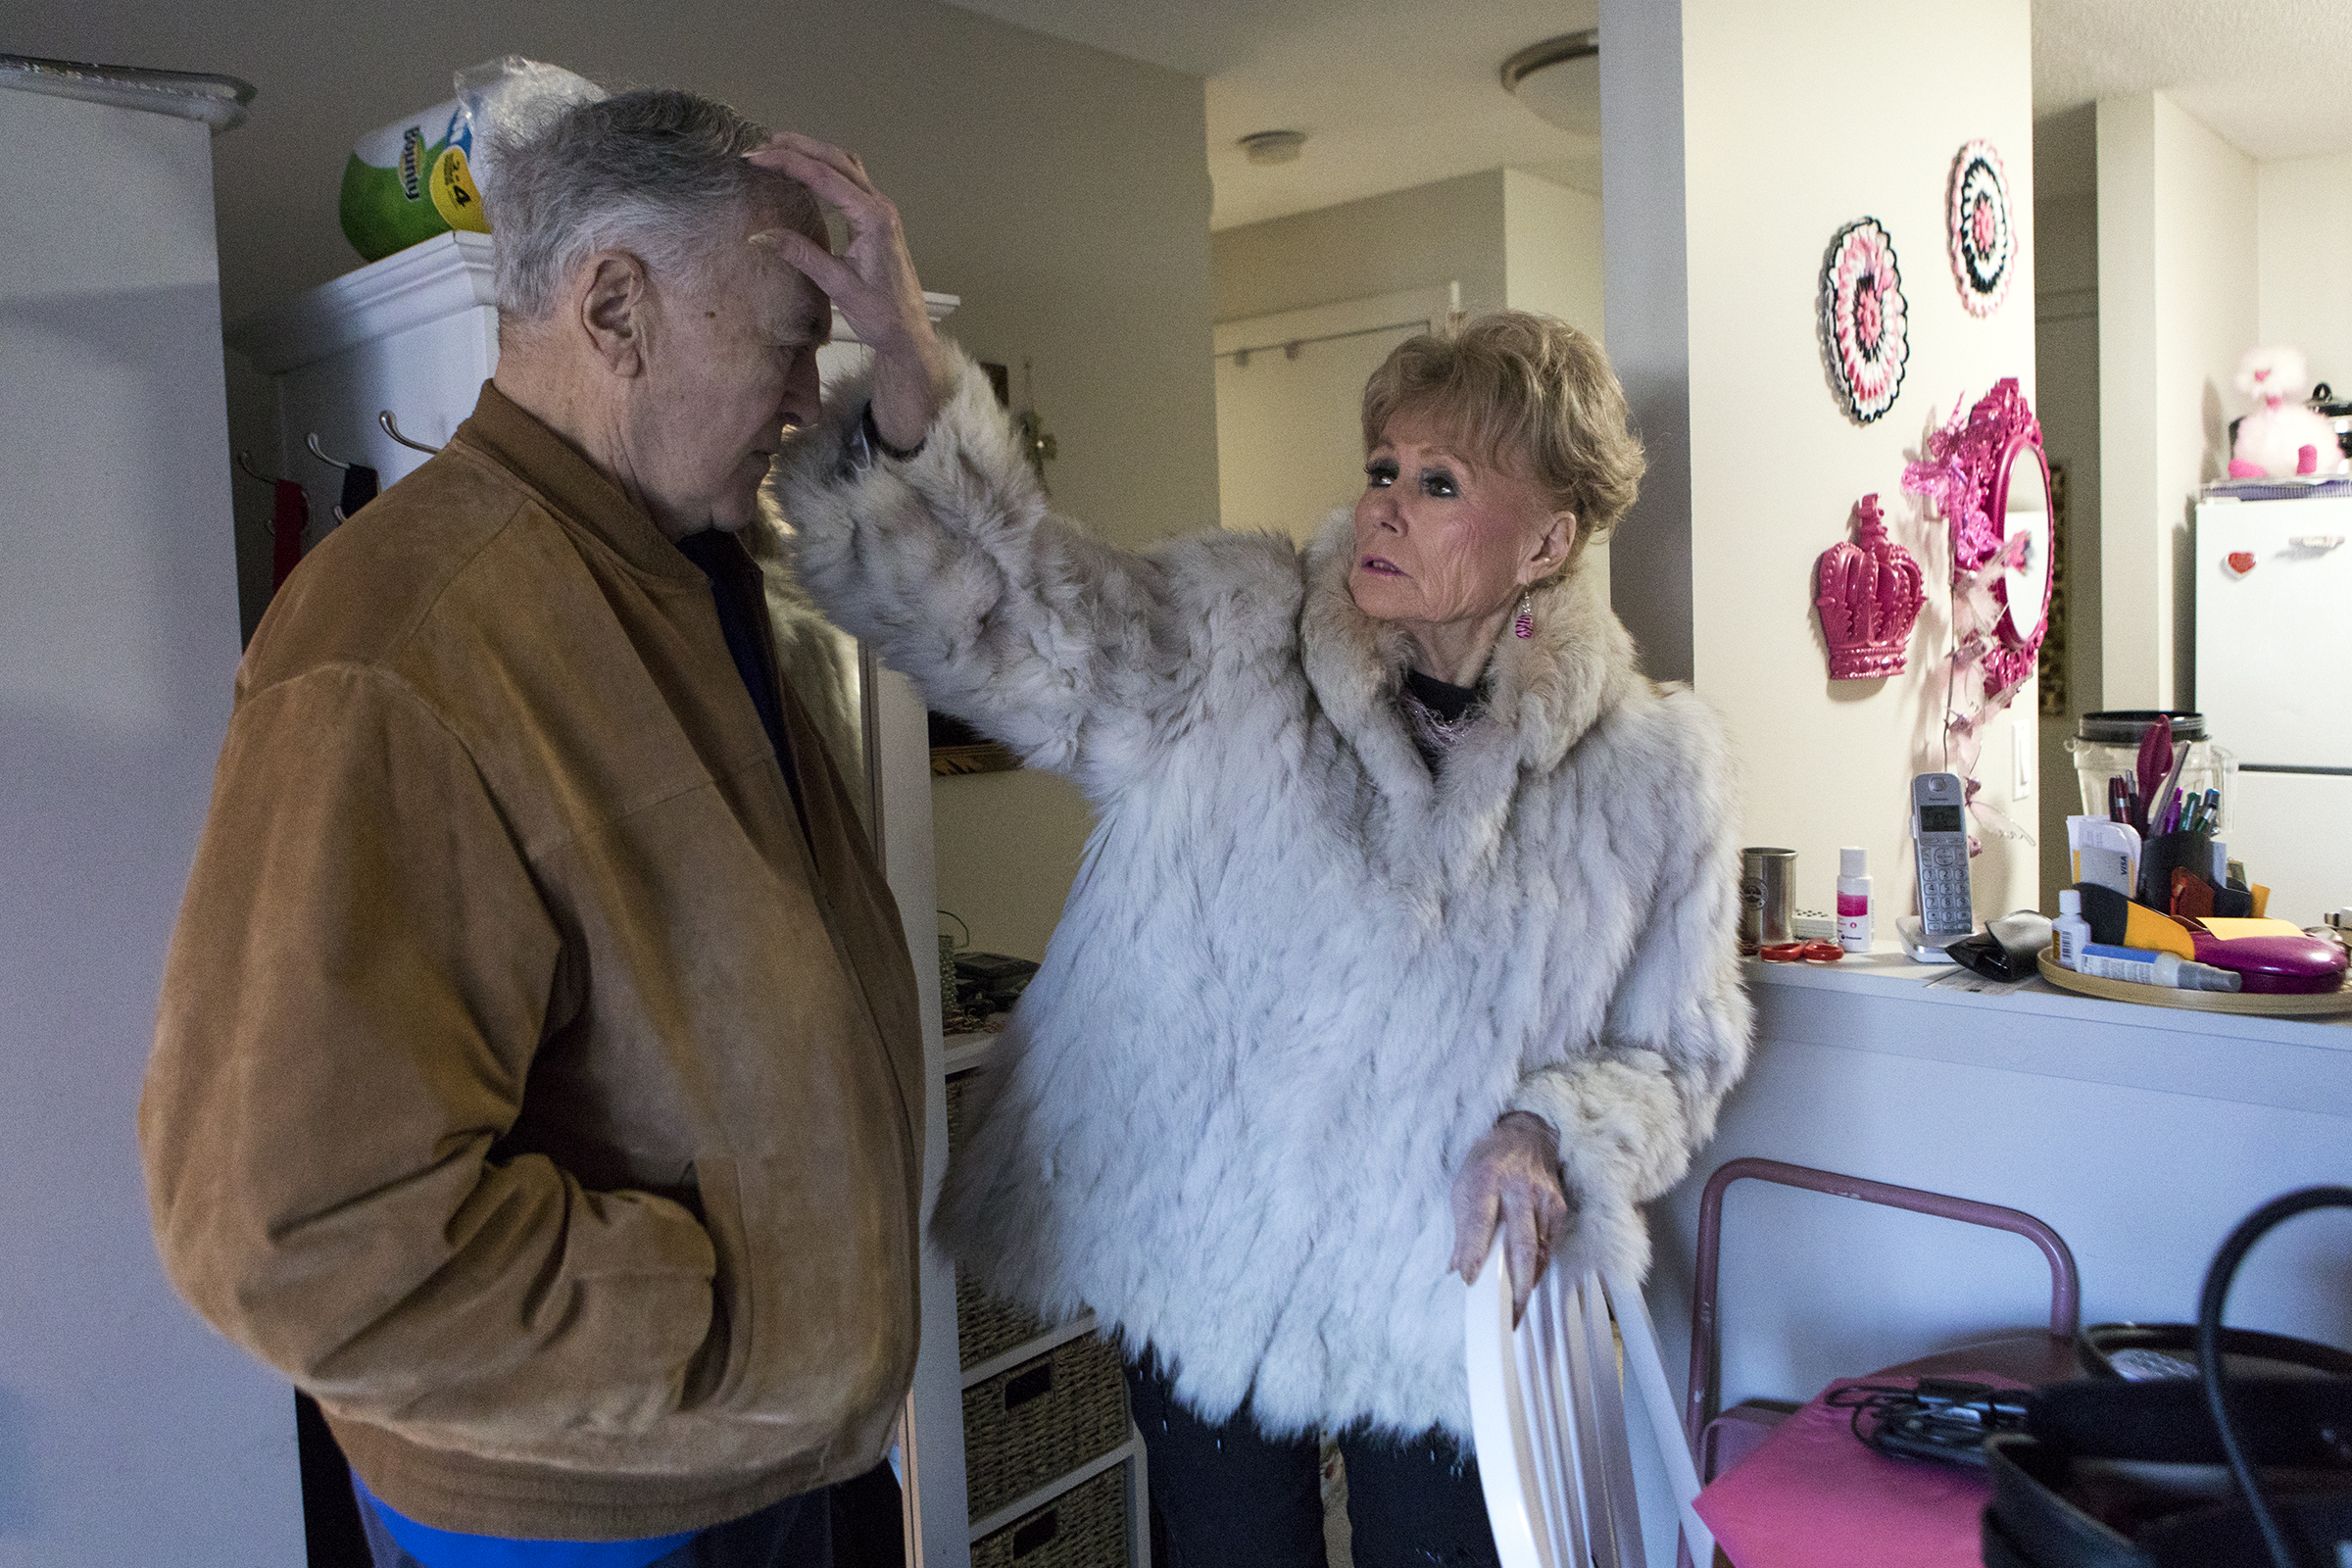 Fran Owens smoothes her husband Jim Haupt's hair before leaving their home in Stoneham on January 14, 2019.